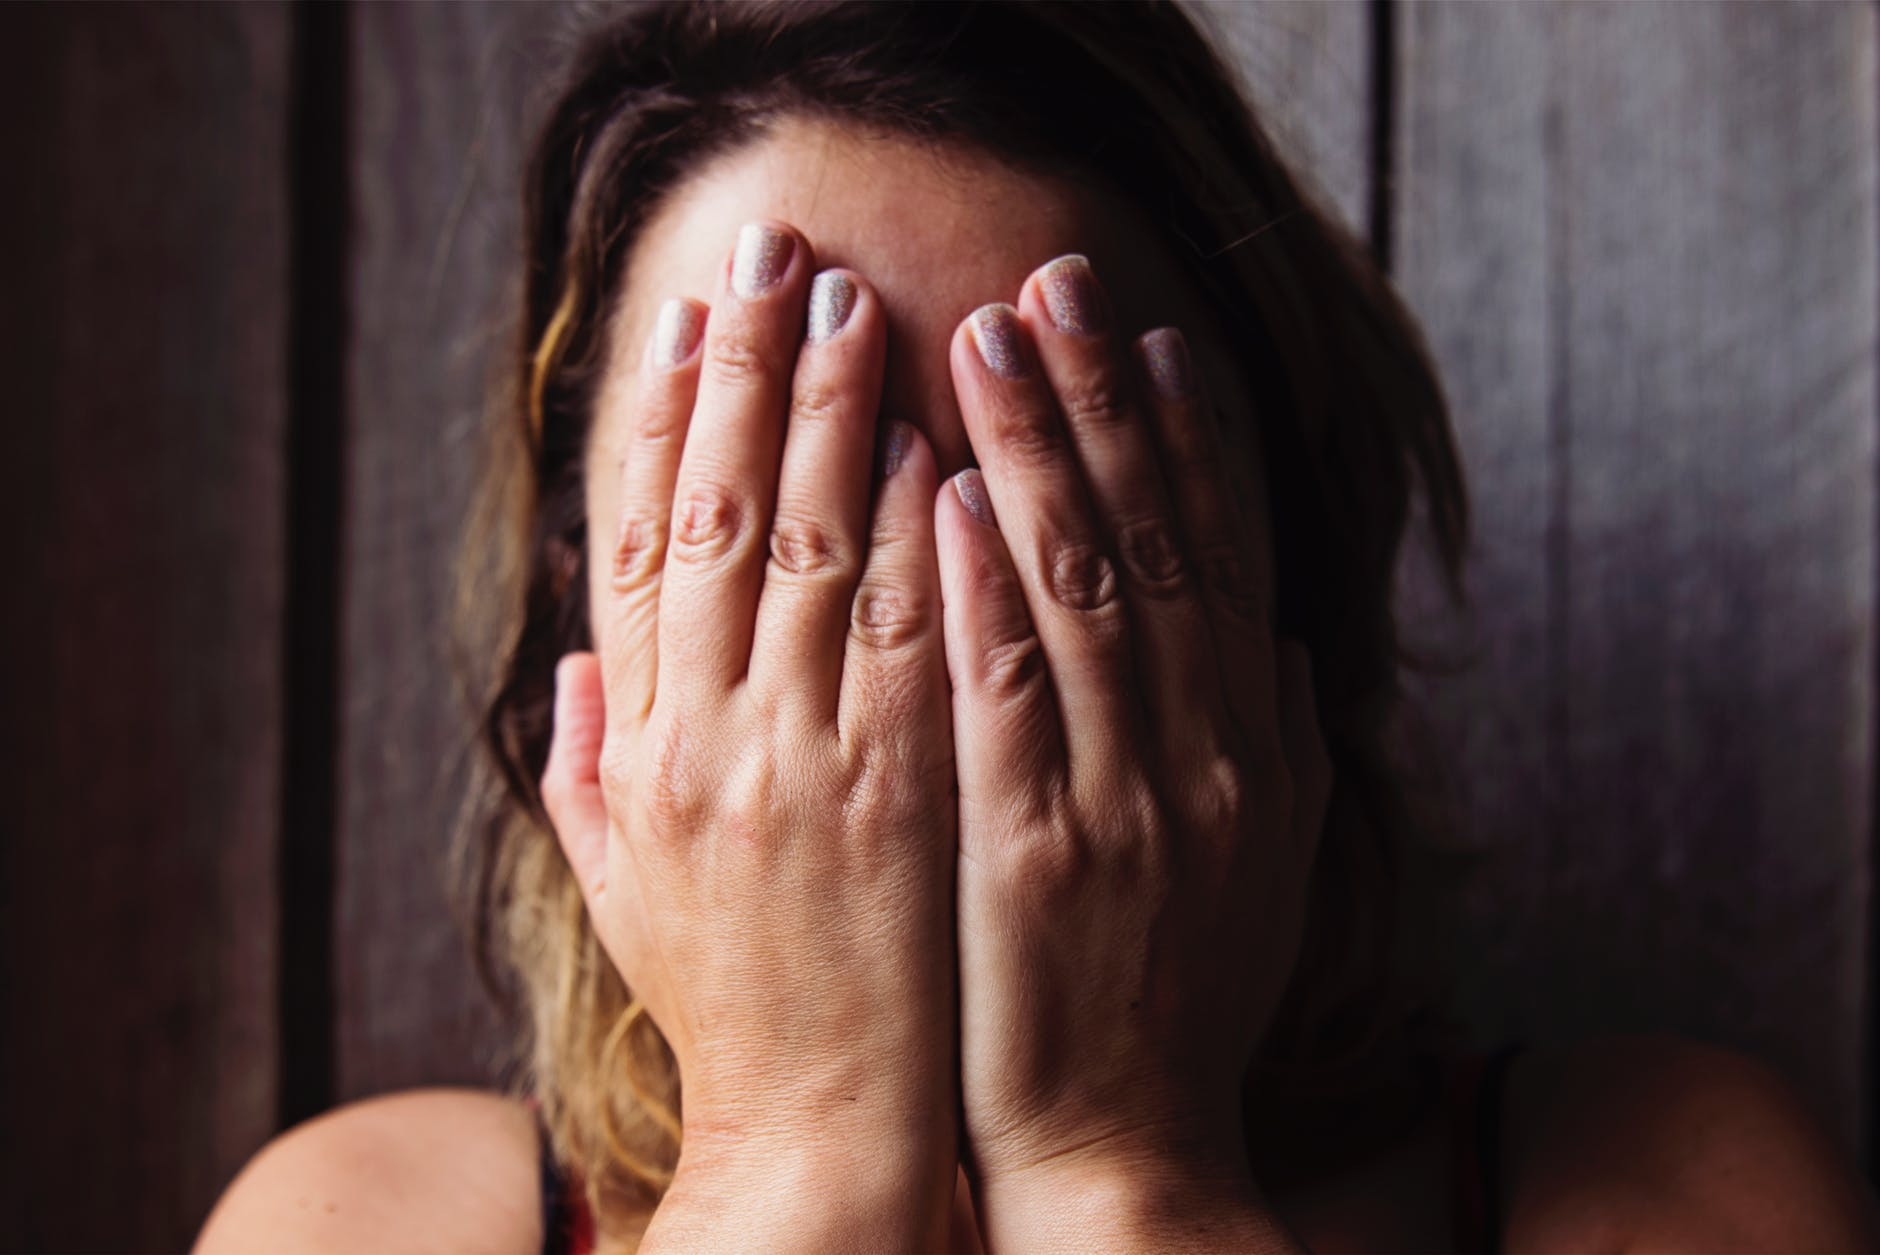 Selling Bad Therapy to Trauma Victims | Psychology Today